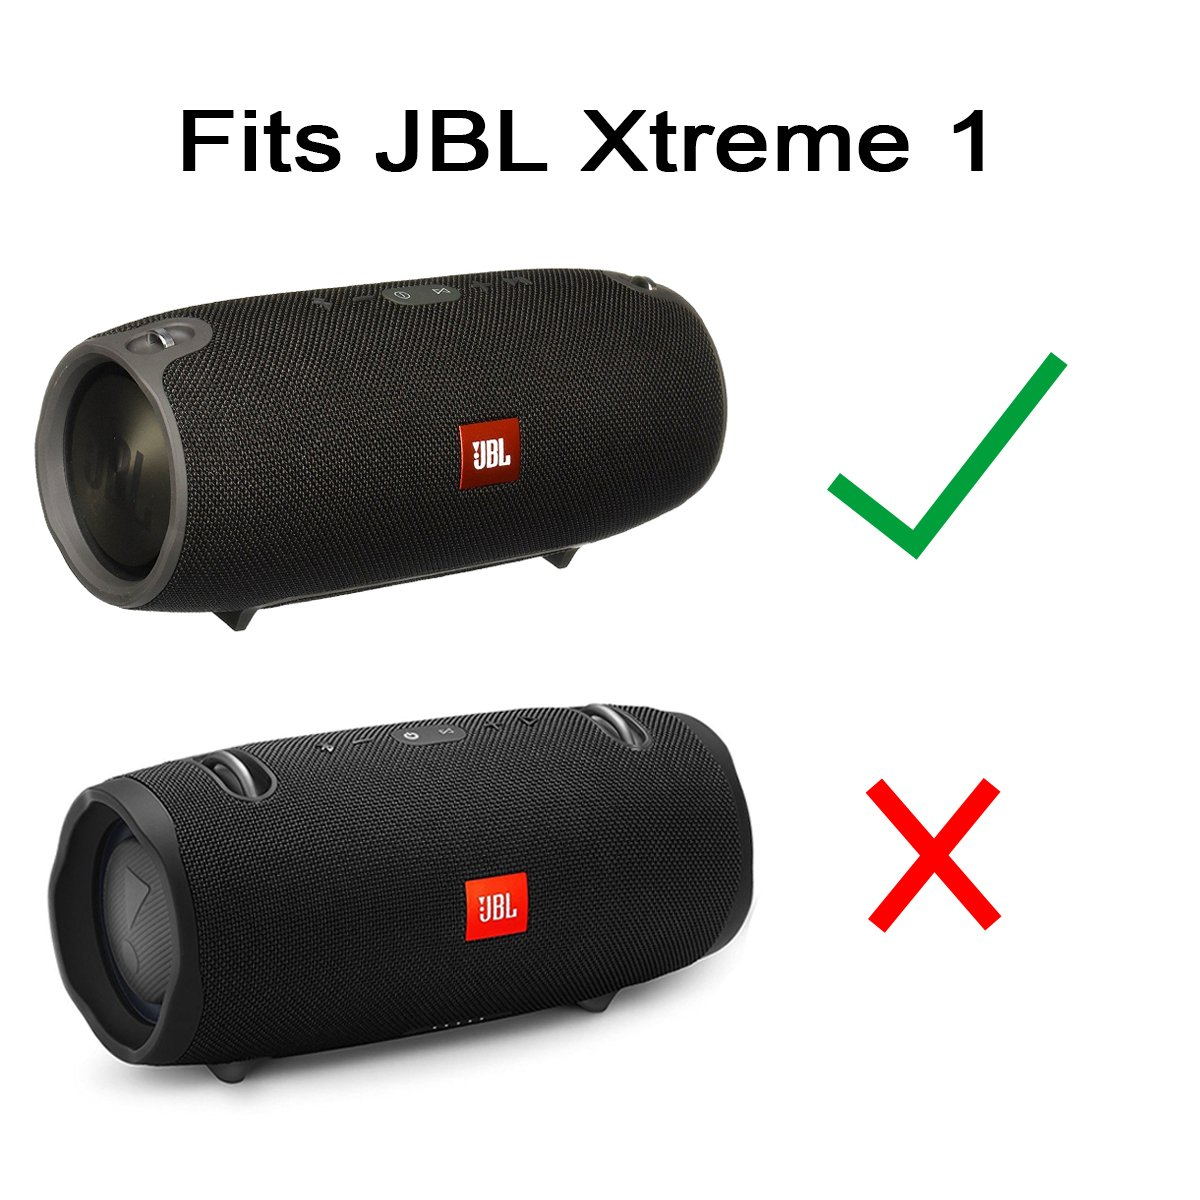 Travel Case For Jbl Xtreme Portable Wireless Bluetooth Speaker Fits Black Power And Adapter By Co2crea Only 1 Hard Pf Bpr7 1z2t Mp3